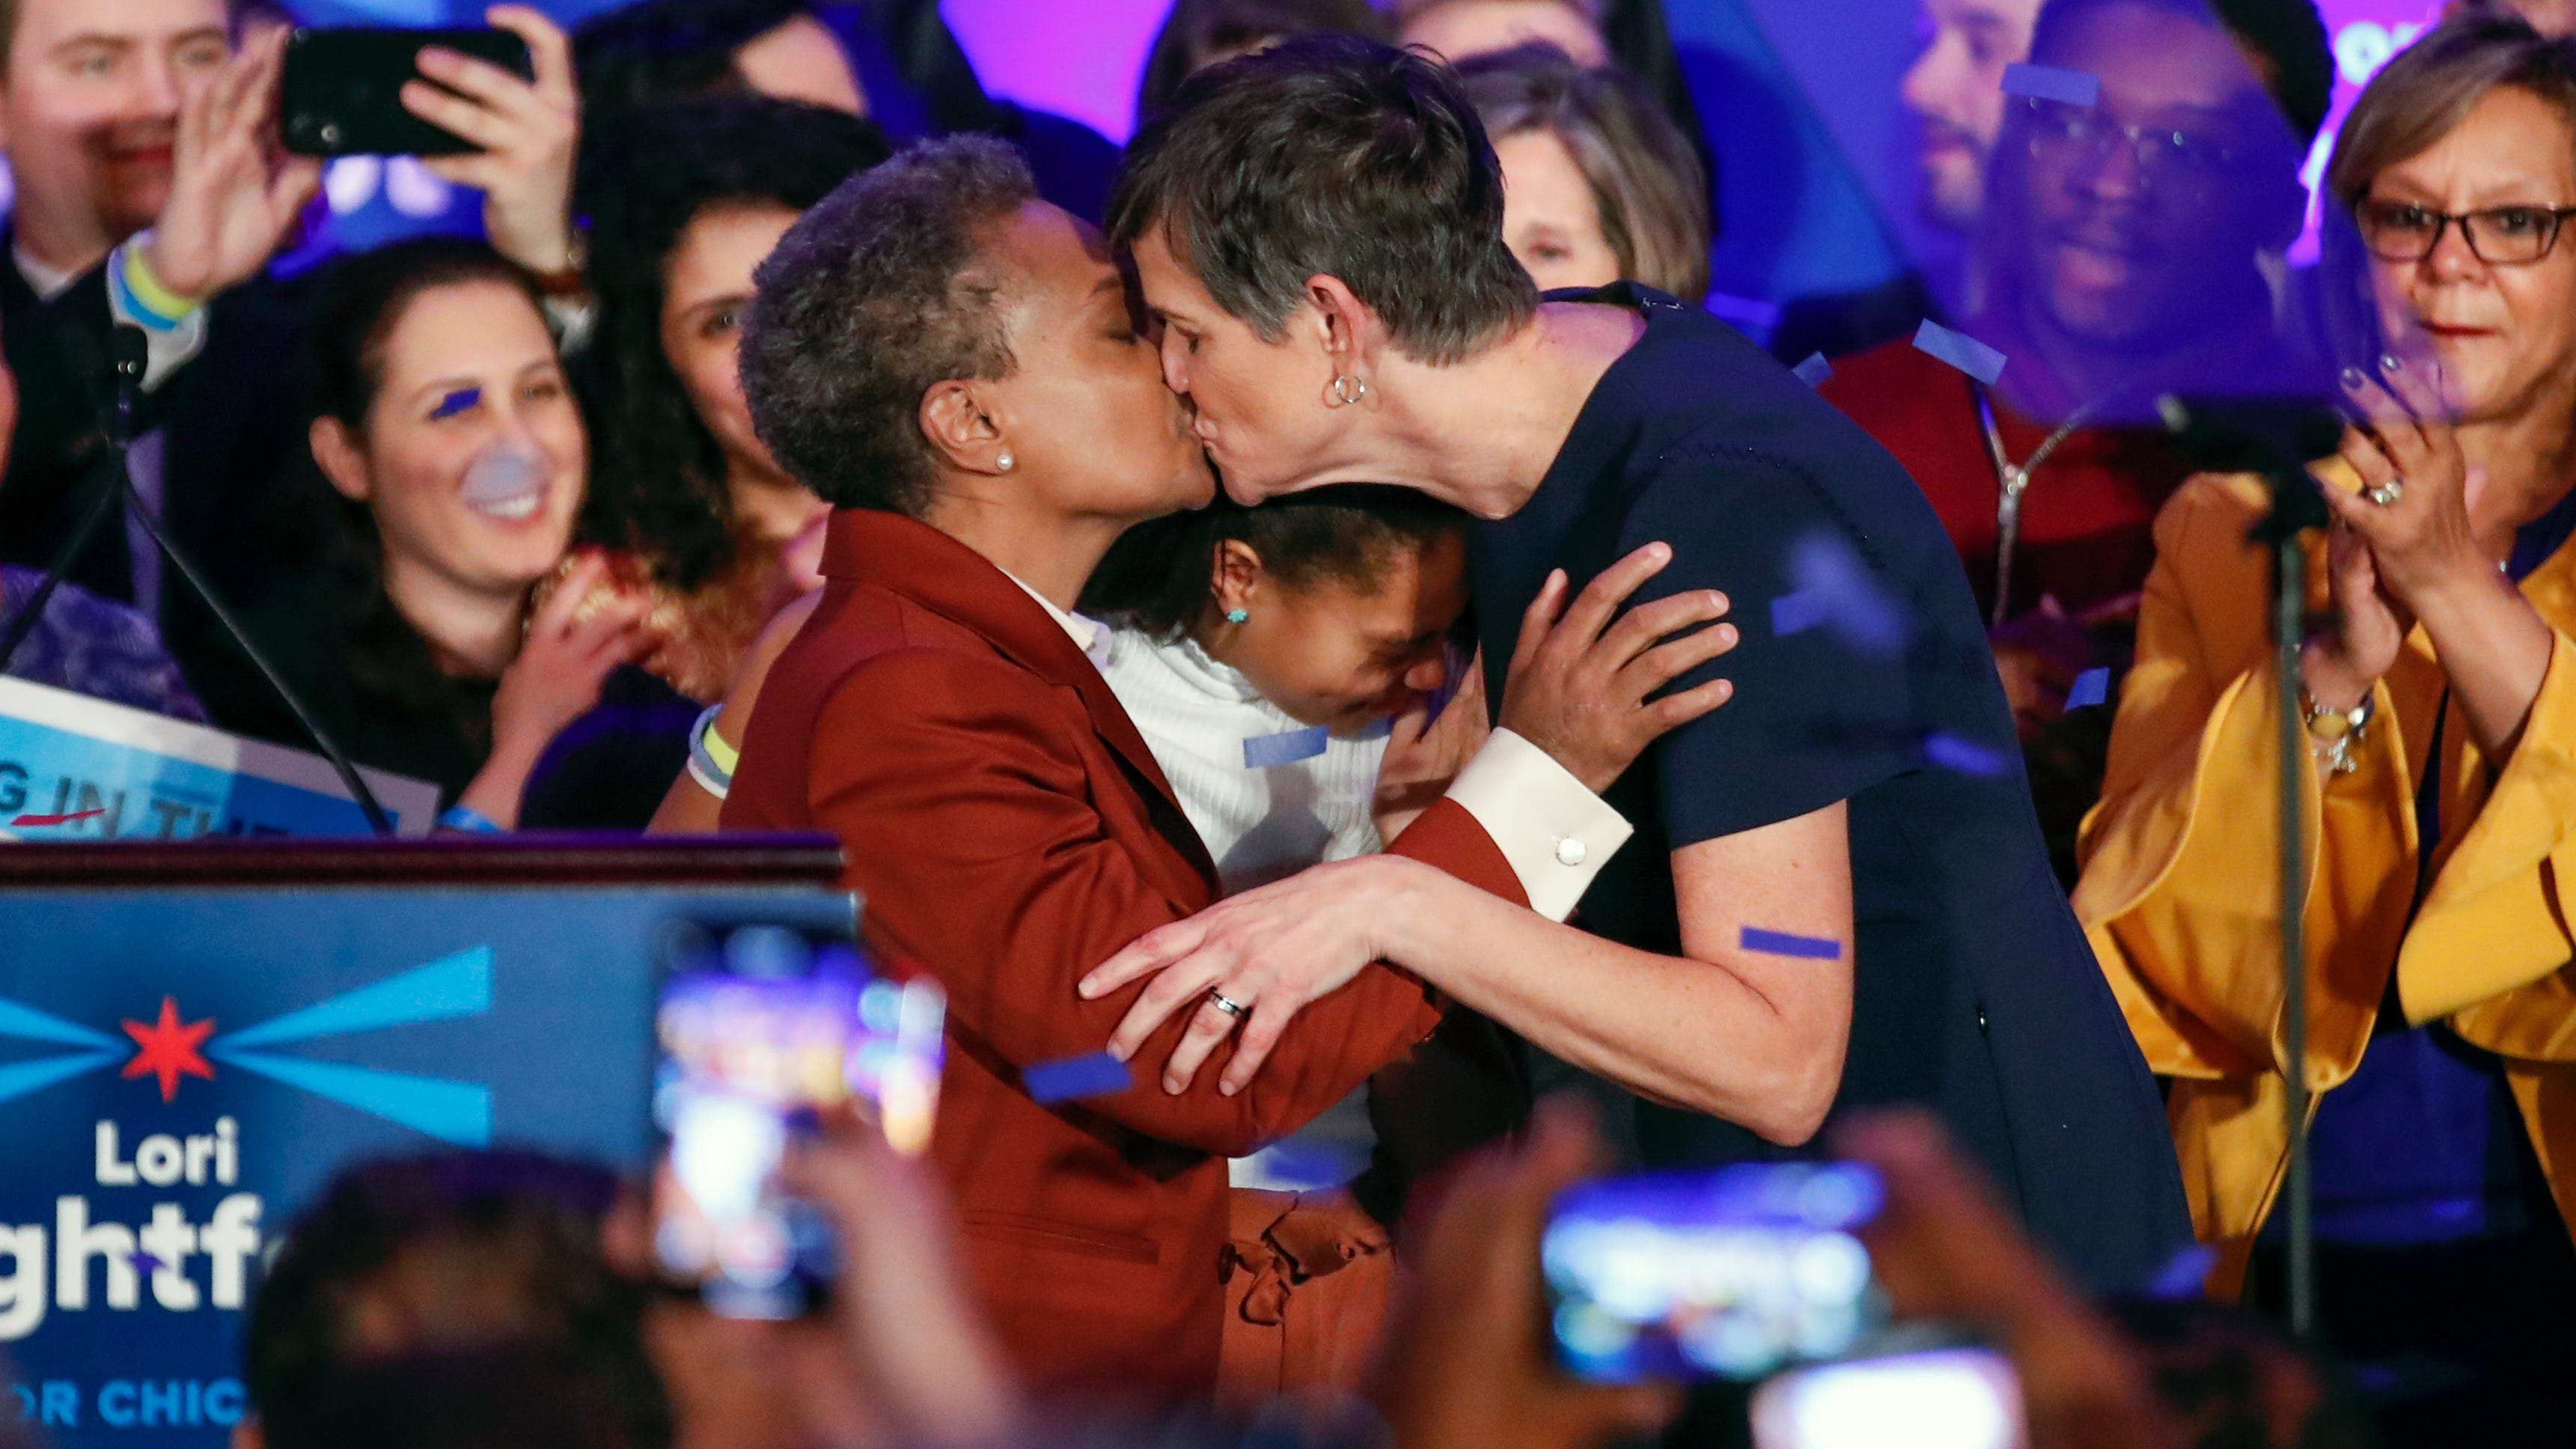 Chicago mayor elect Lori Lightfoot (L) kisses wife Amy Eshleman after speaking during the election night party in Chicago on April 2, 2019. In a historic first, a gay African American woman was elected mayor of America's third largest city as Chicago voters entrusted a political novice with tackling difficult problems of economic inequality and gun violence.